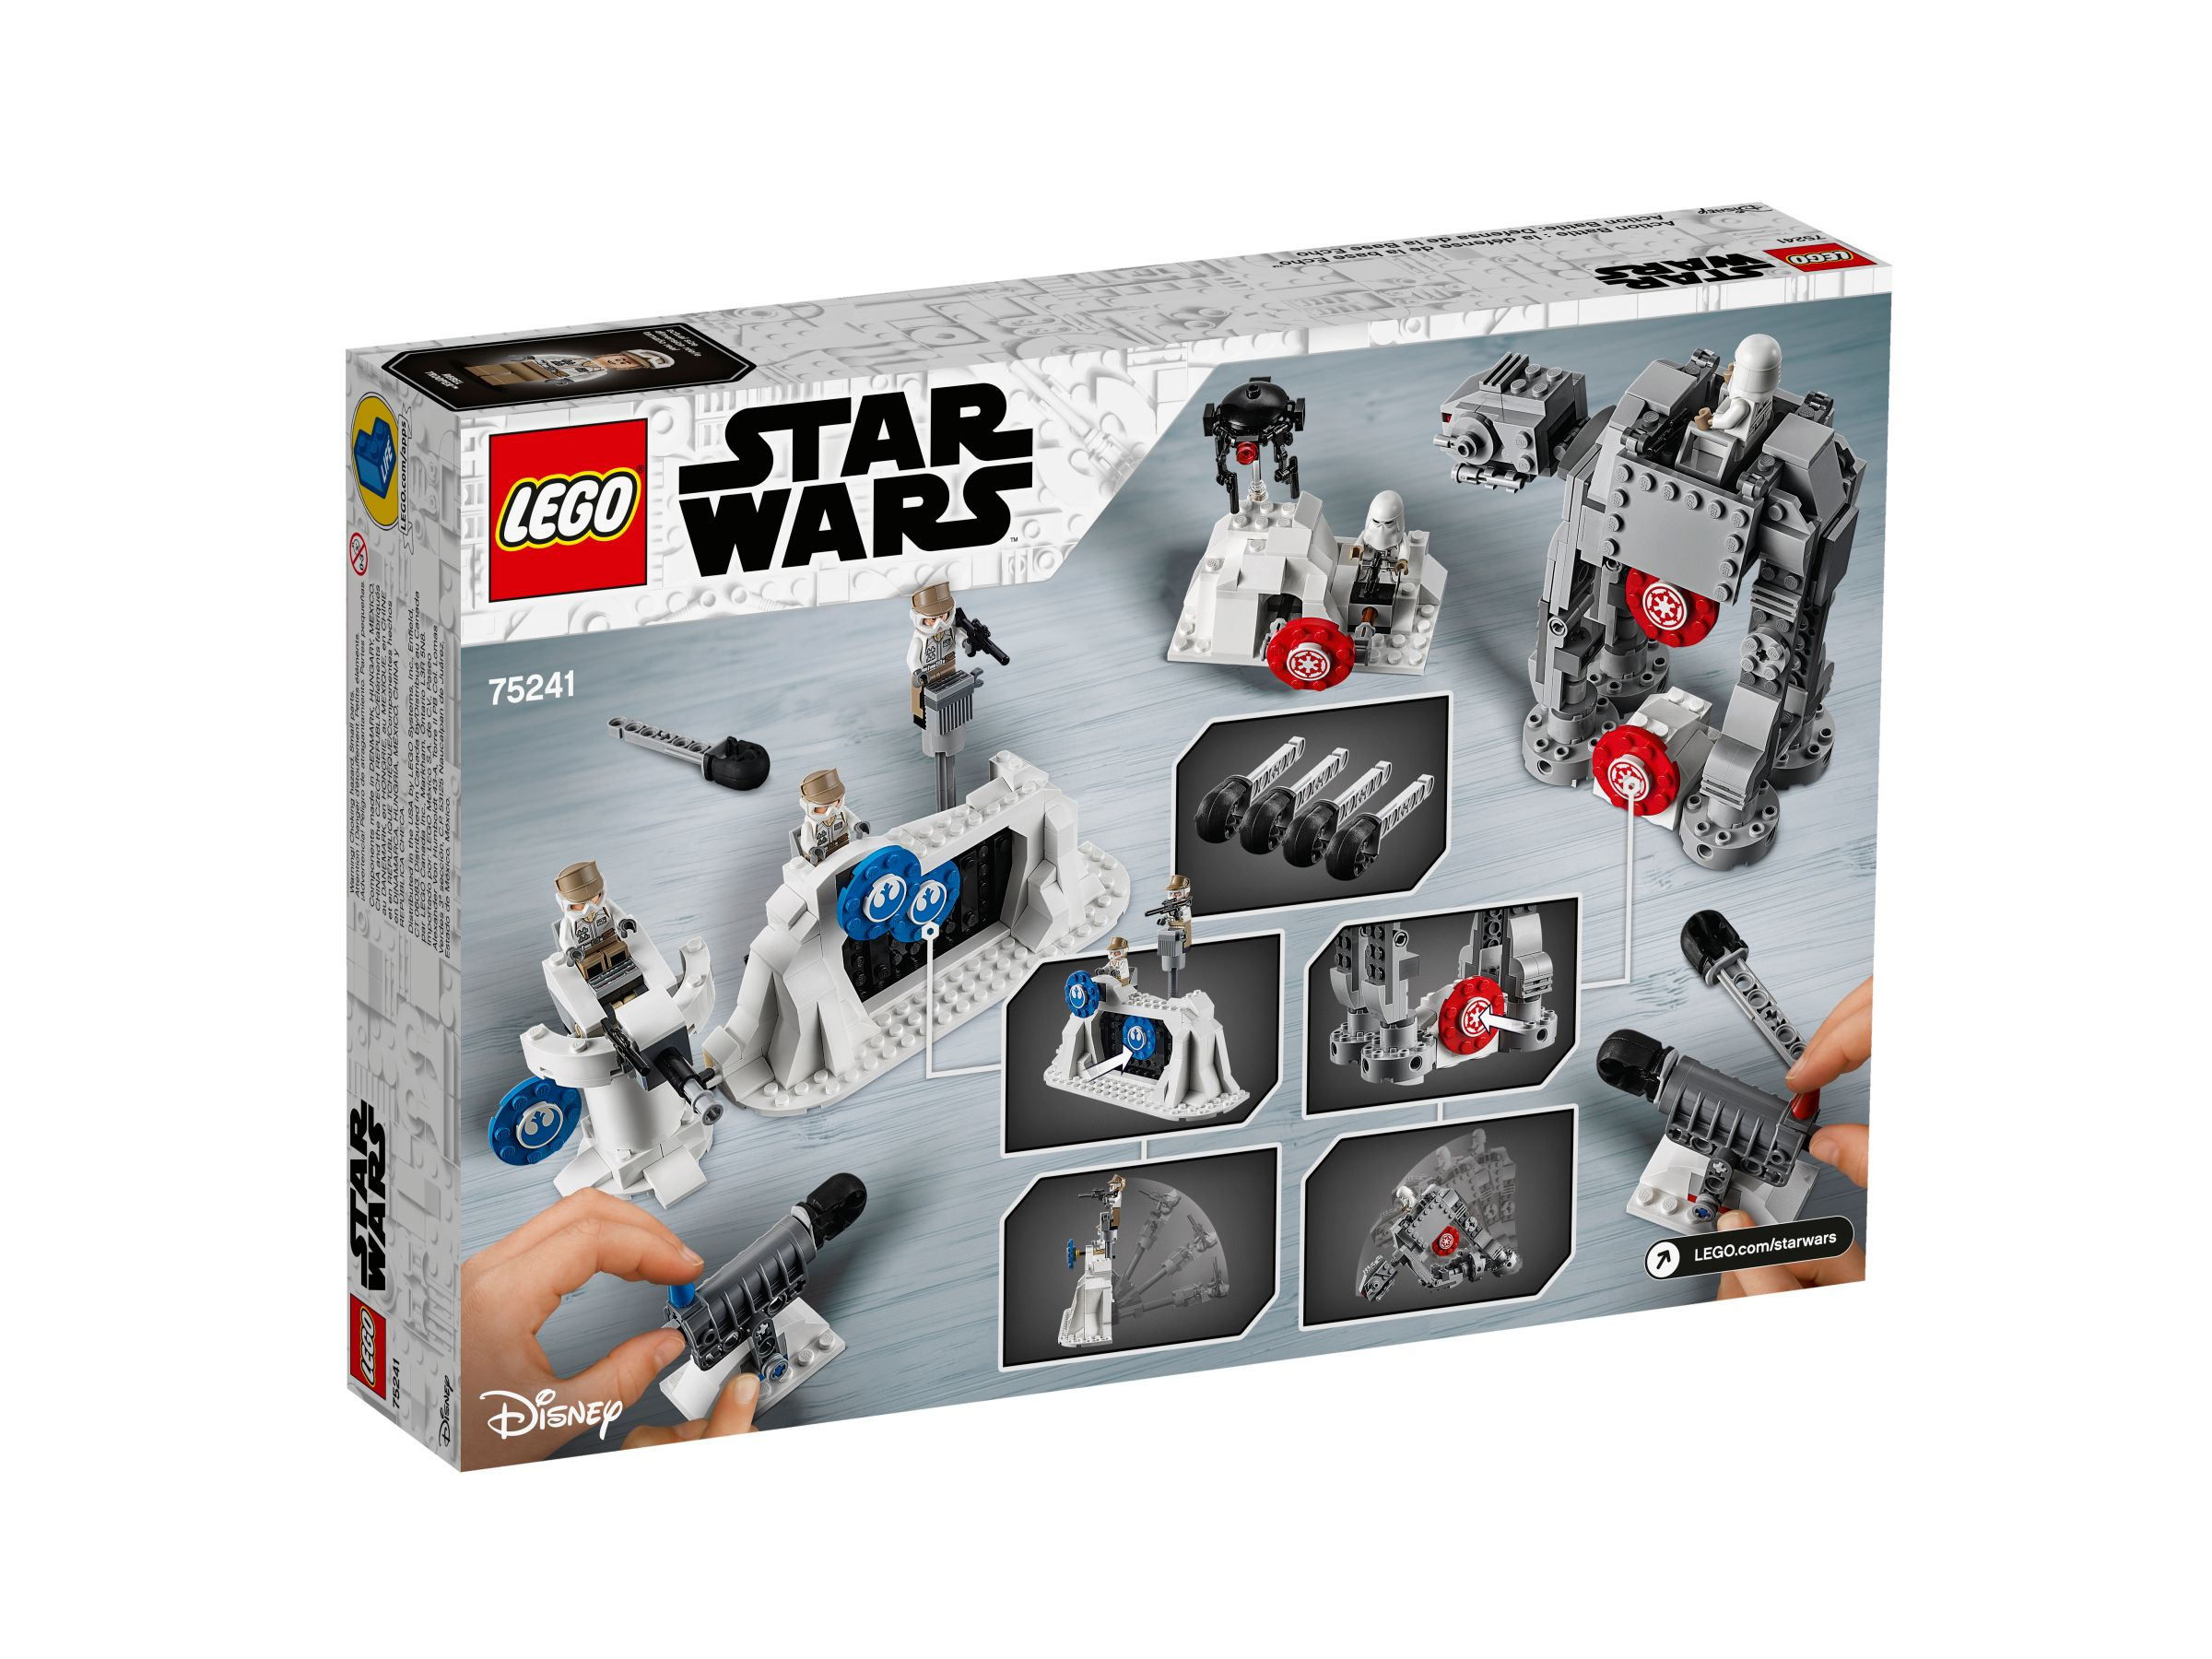 LEGO Star Wars 75241 Action Battle Echo Base™ Verteidigung LEGO_75241_alt4.jpg